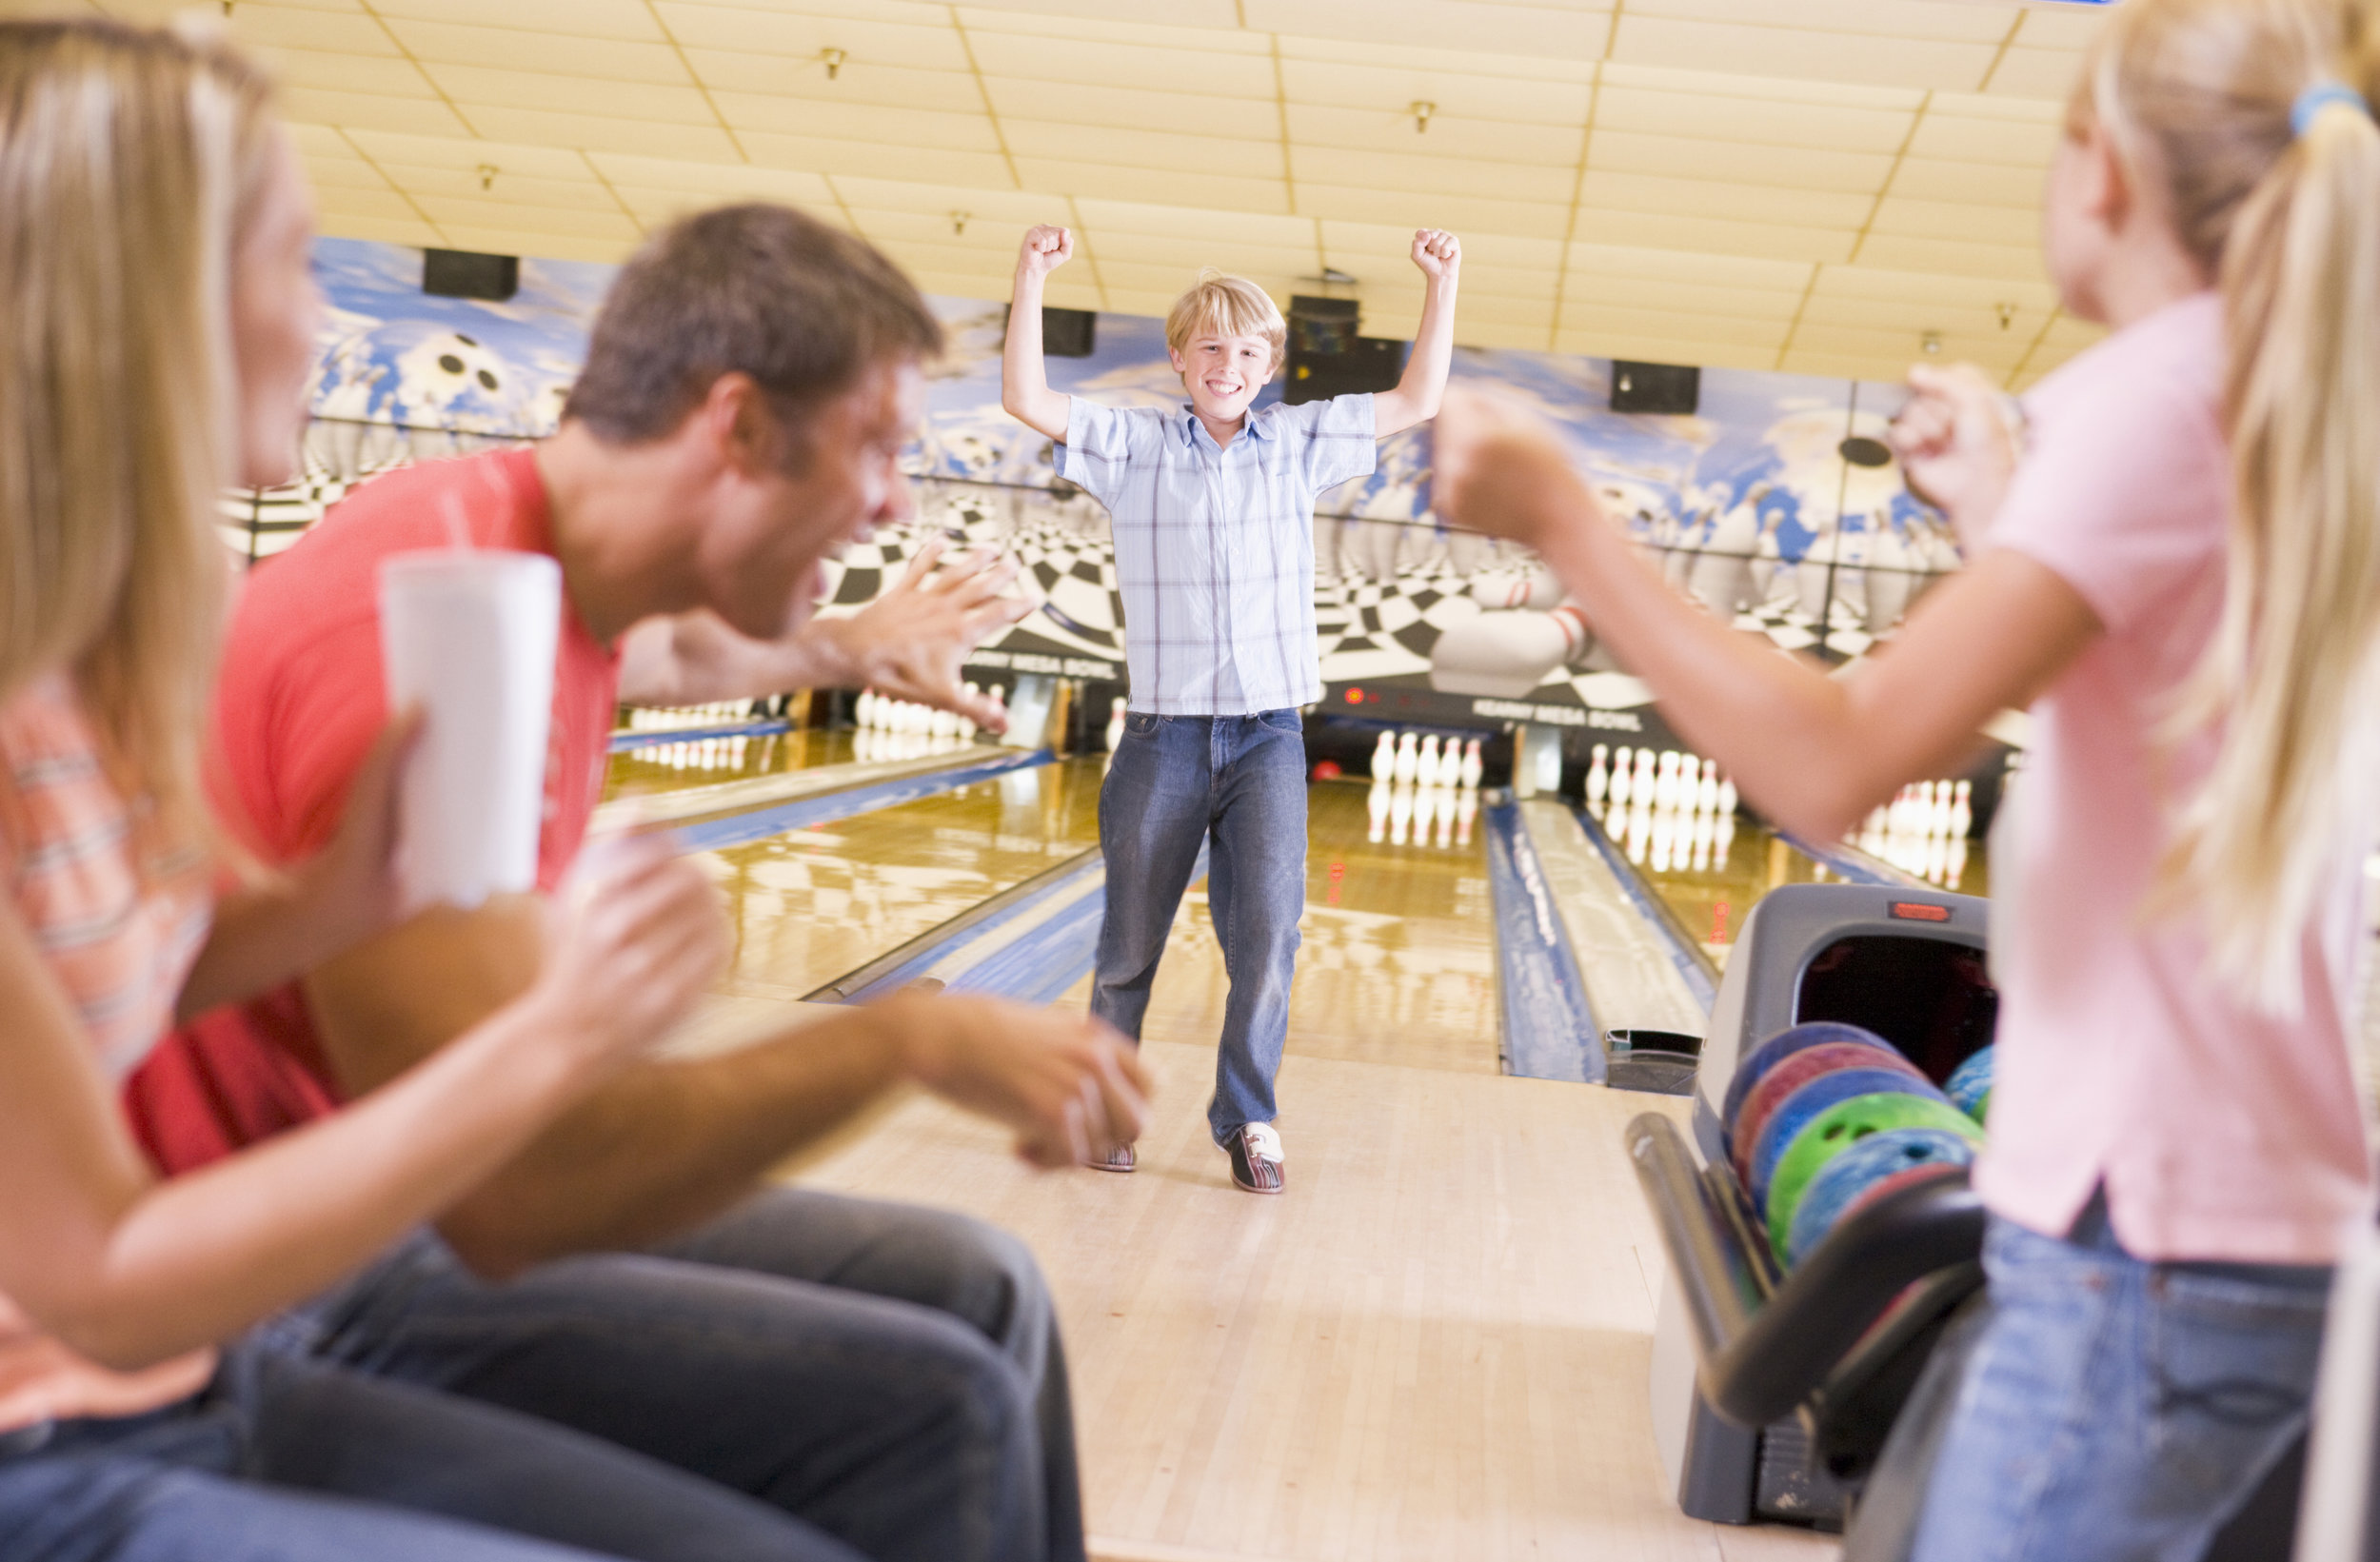 family-in-bowling-alley-cheering-and-smiling_HY0FN6ABj.jpg